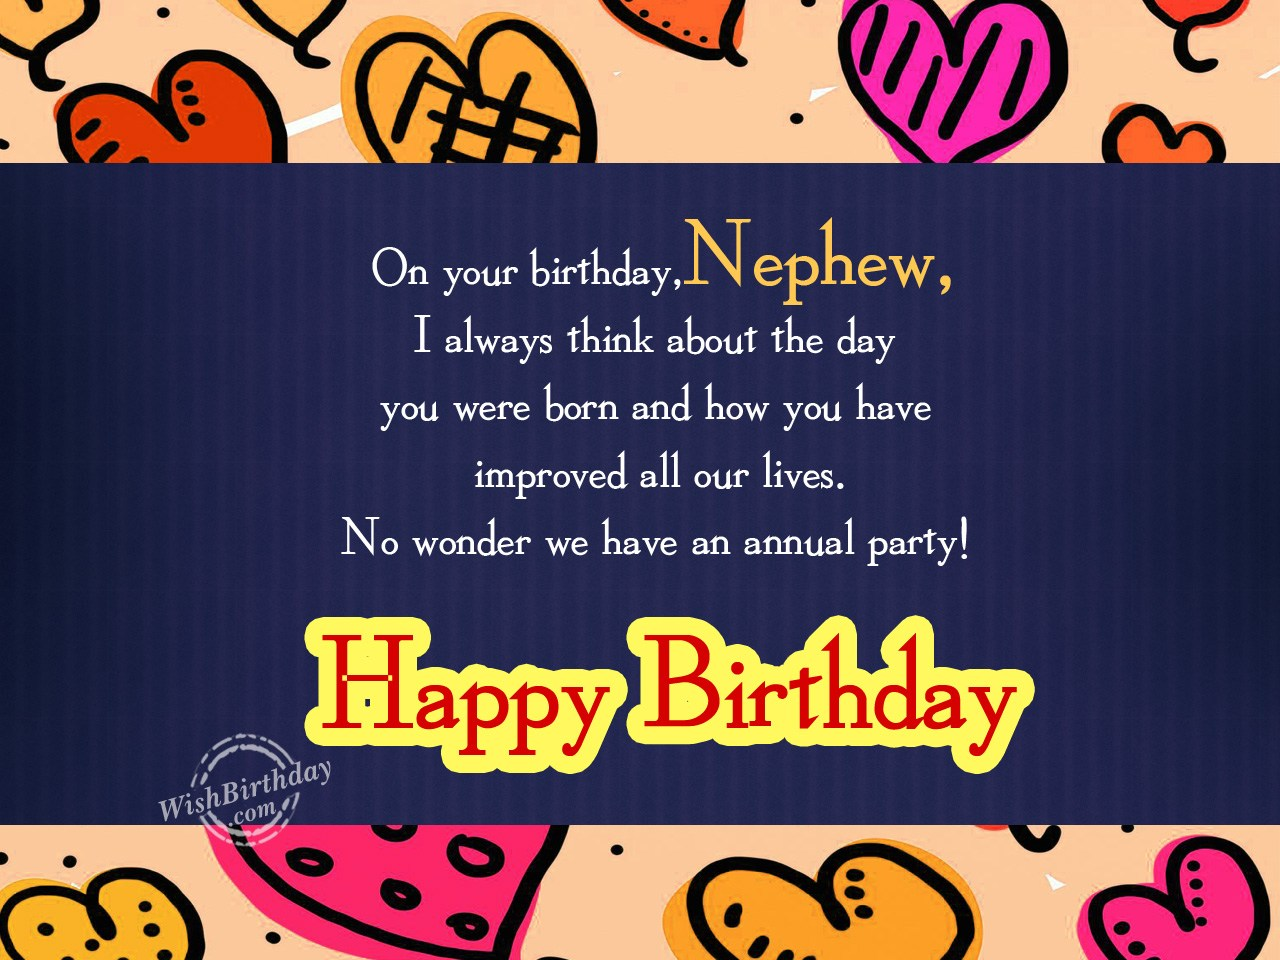 birthday message to nephew boy ; On-your-birthday-I-always-think-about-the-day